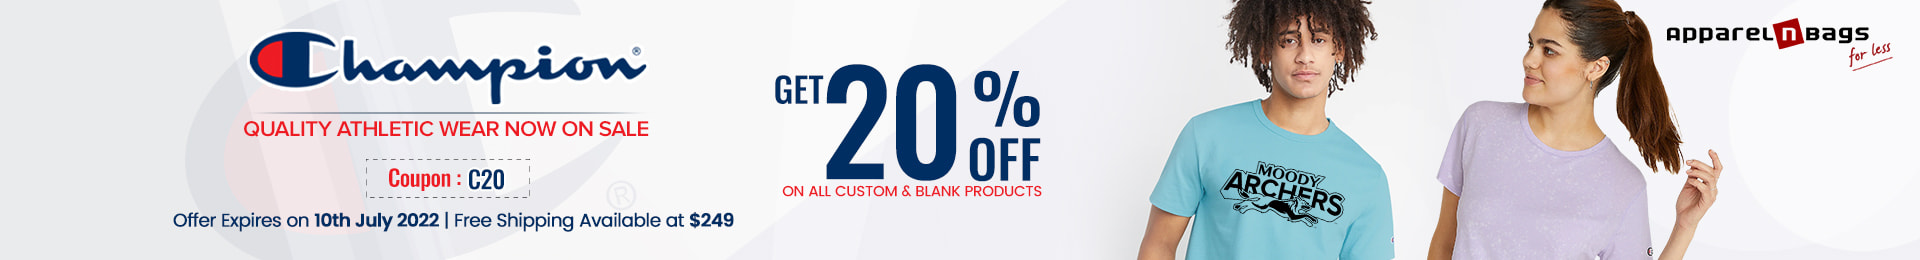 Champion Cami and Tank Tops